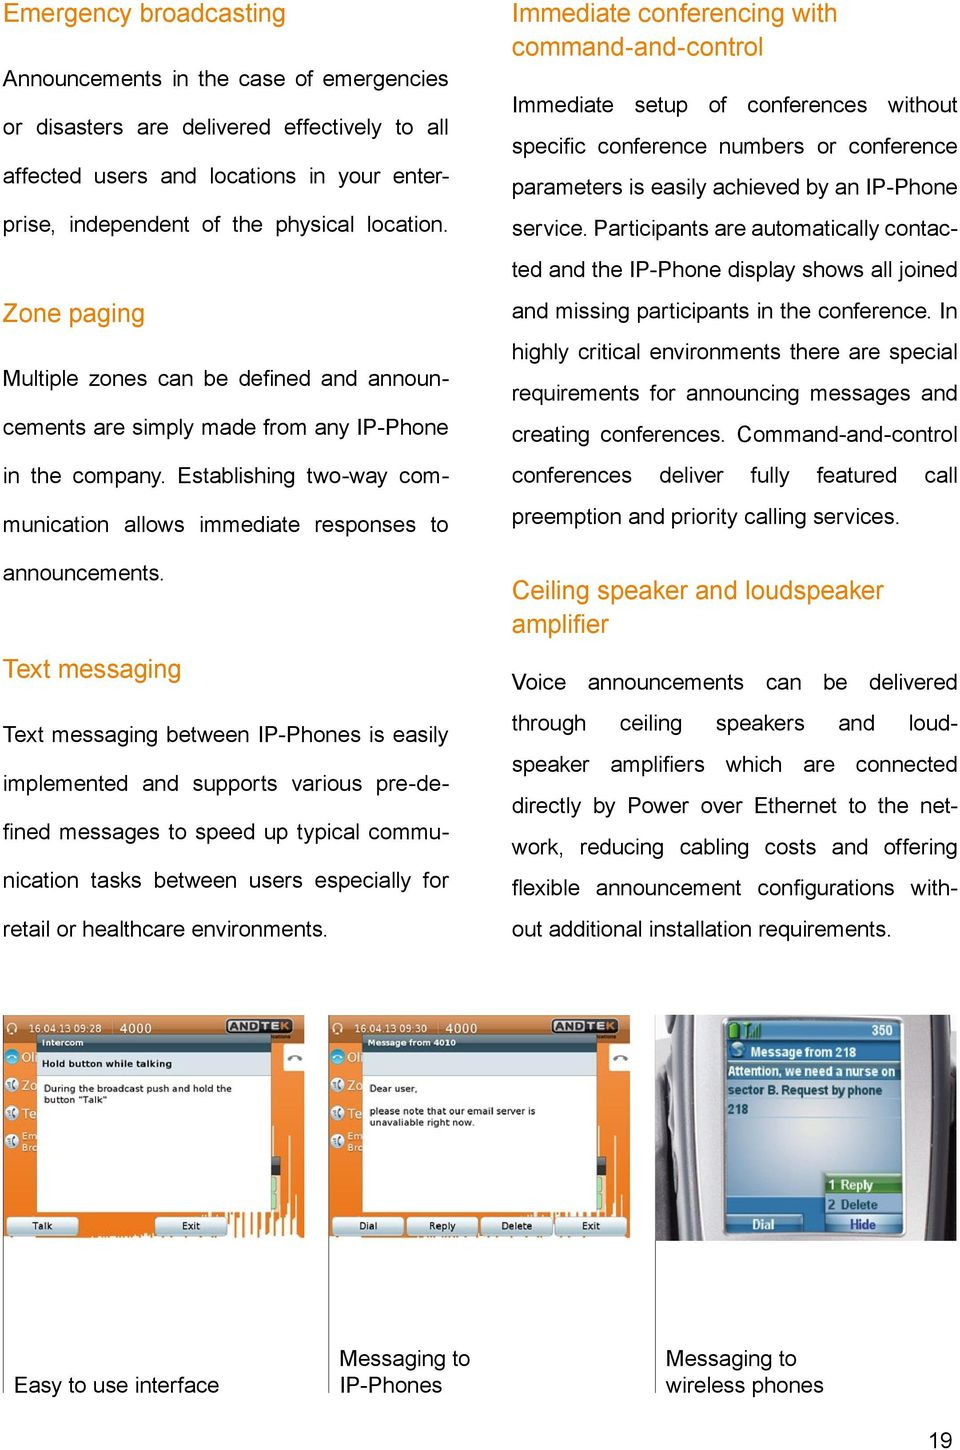 Text messaging Text messaging between IPPhones is easily implemented and supports various predefined messages to speed up typical communication tasks between users especially for retail or healthcare